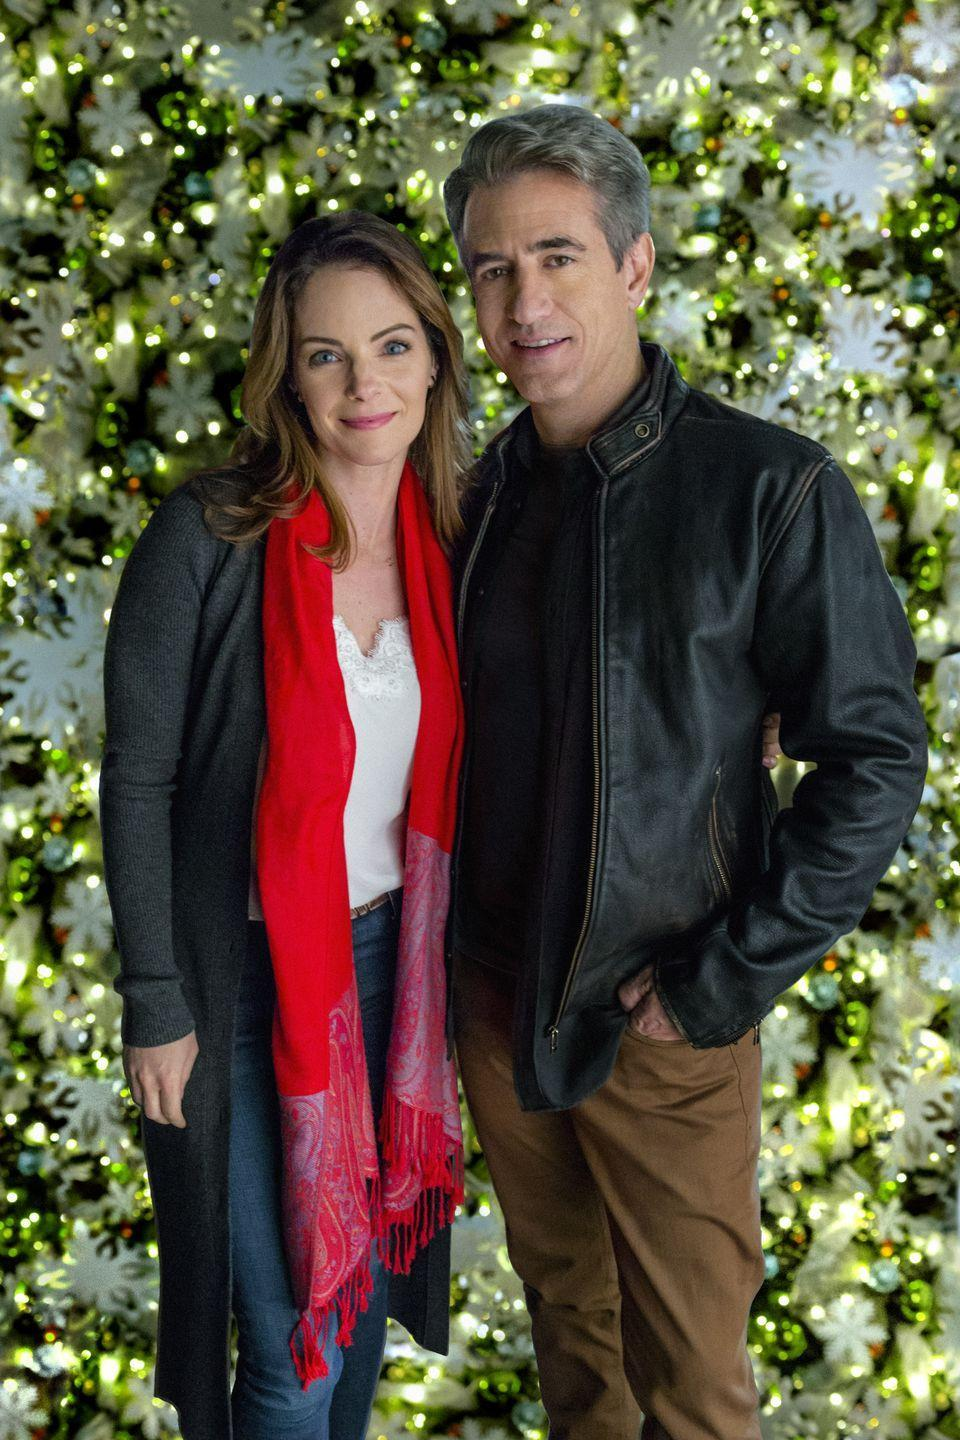 <p>This one is bound to tug on the heartstrings. Journalist Tom Dermot Mulroney) promised his late father he'd take a cross-country train trip and write about the whole thing. While he's traveling, he ends up running into his ex-girlfriend Eleanor (Kimberly Williams-Paisley). You can imagine what happens from there.</p>